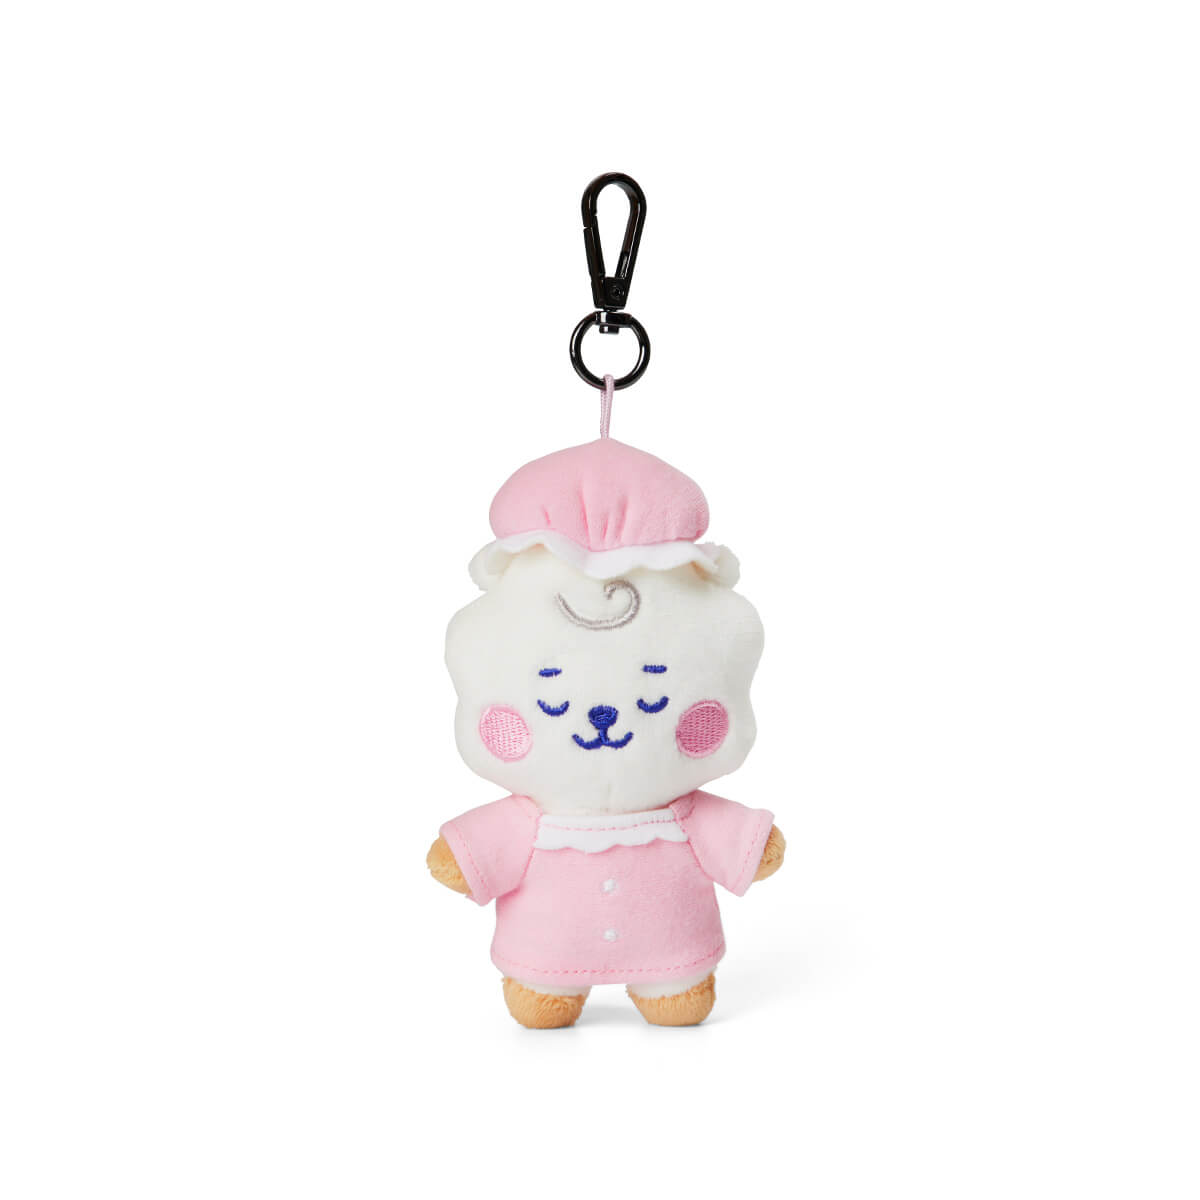 BT21 RJ Dream of Baby Bag Charm